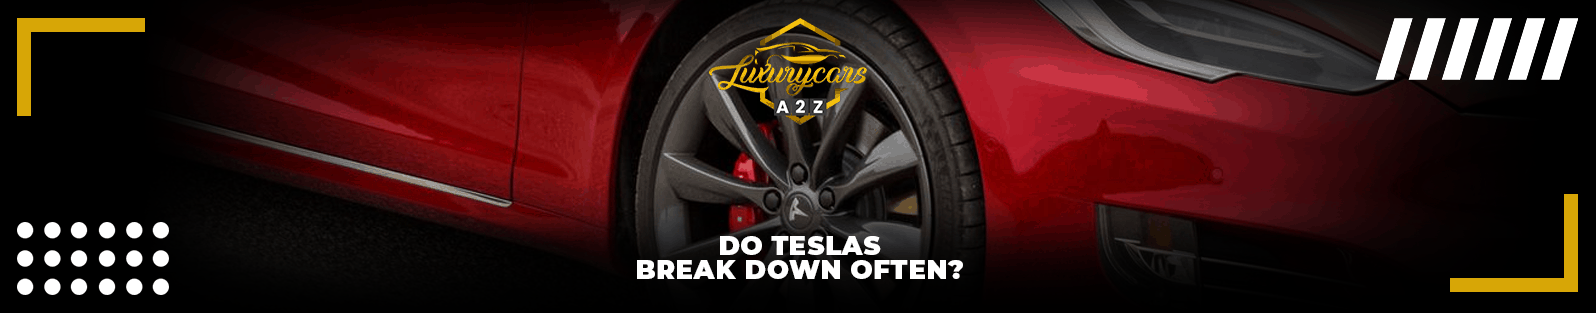 Do Teslas break down often?